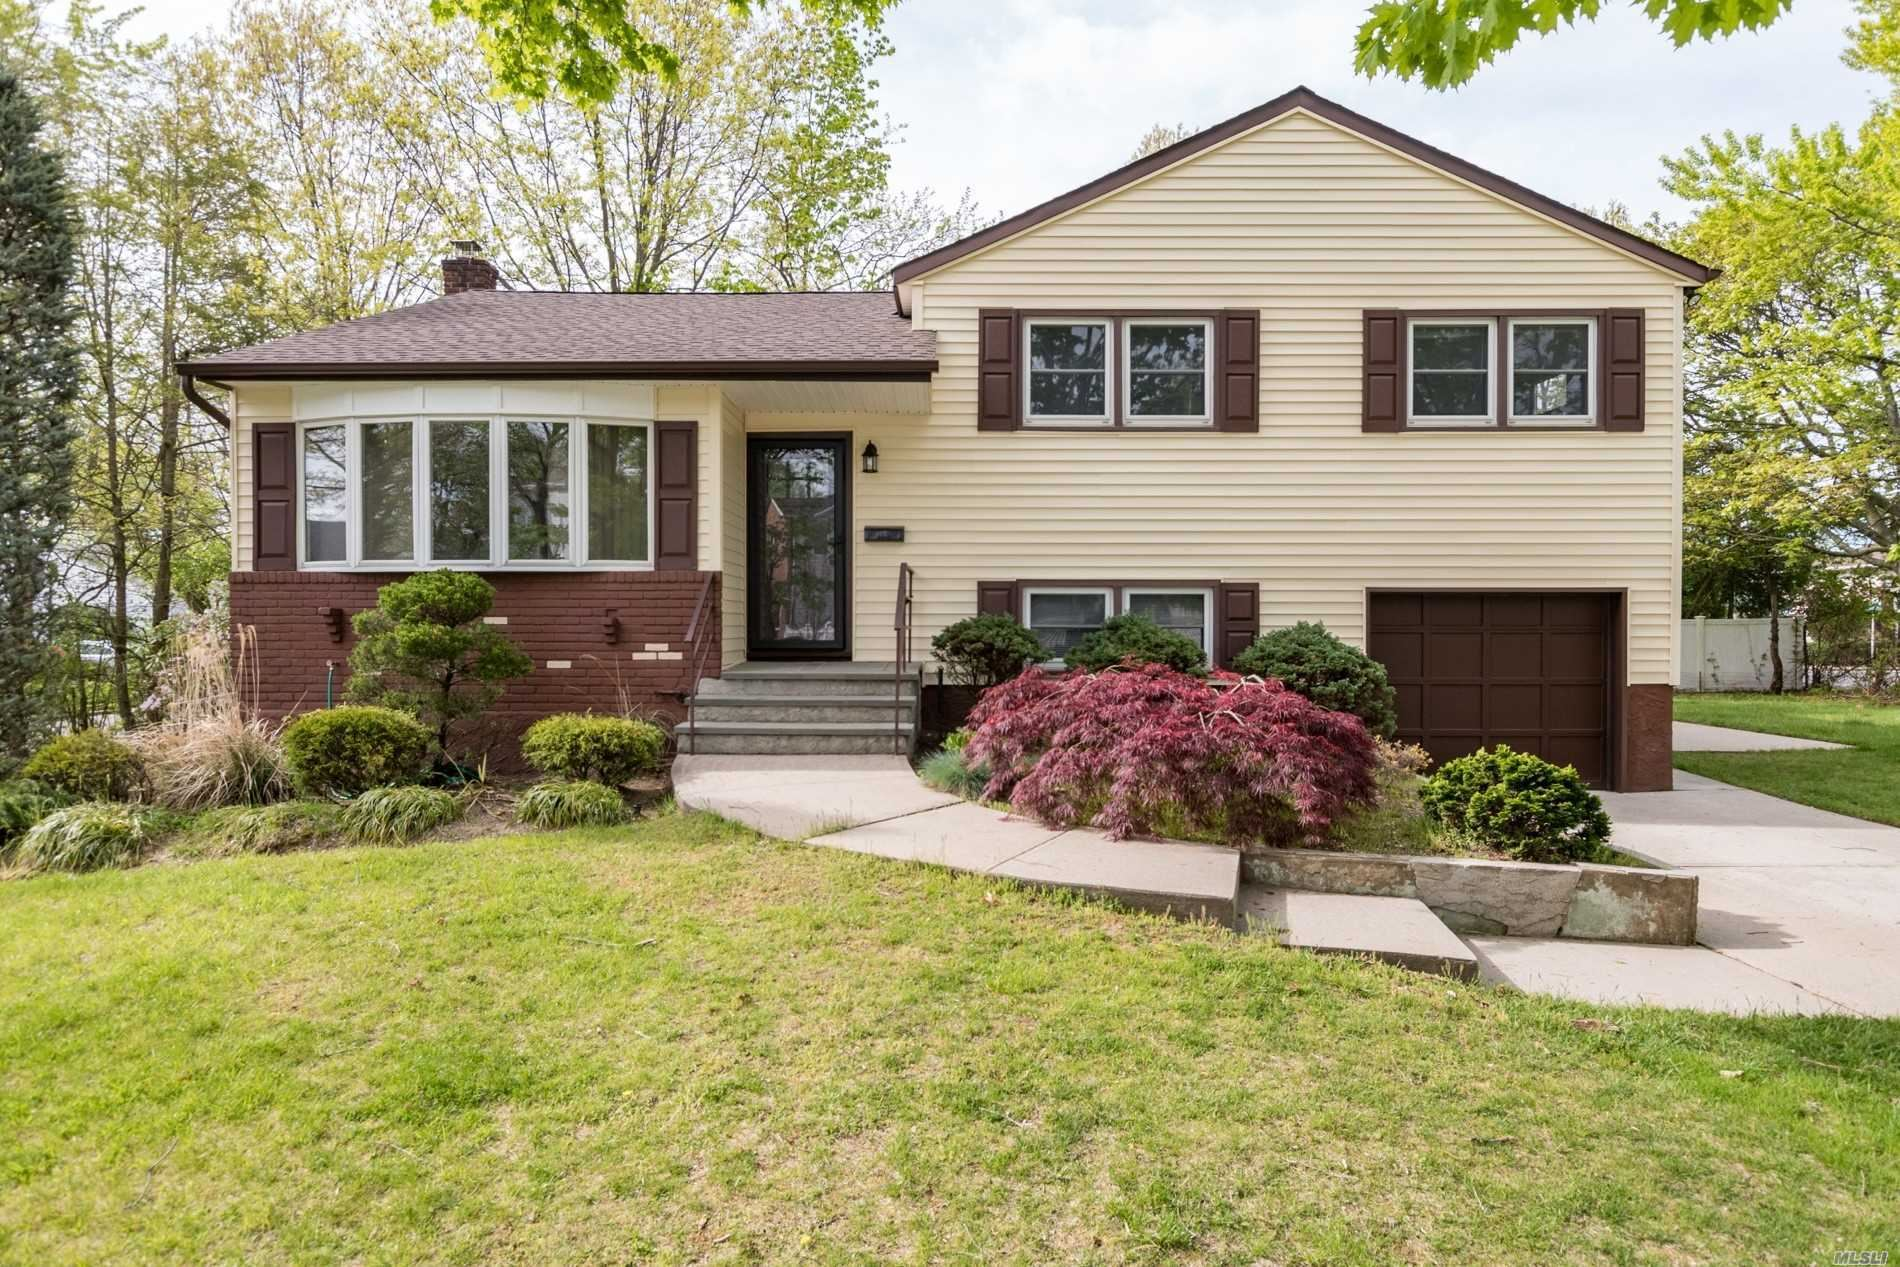 2586 Grayson Dr, East Meadow, NY 11554 - MLS#: 3216096